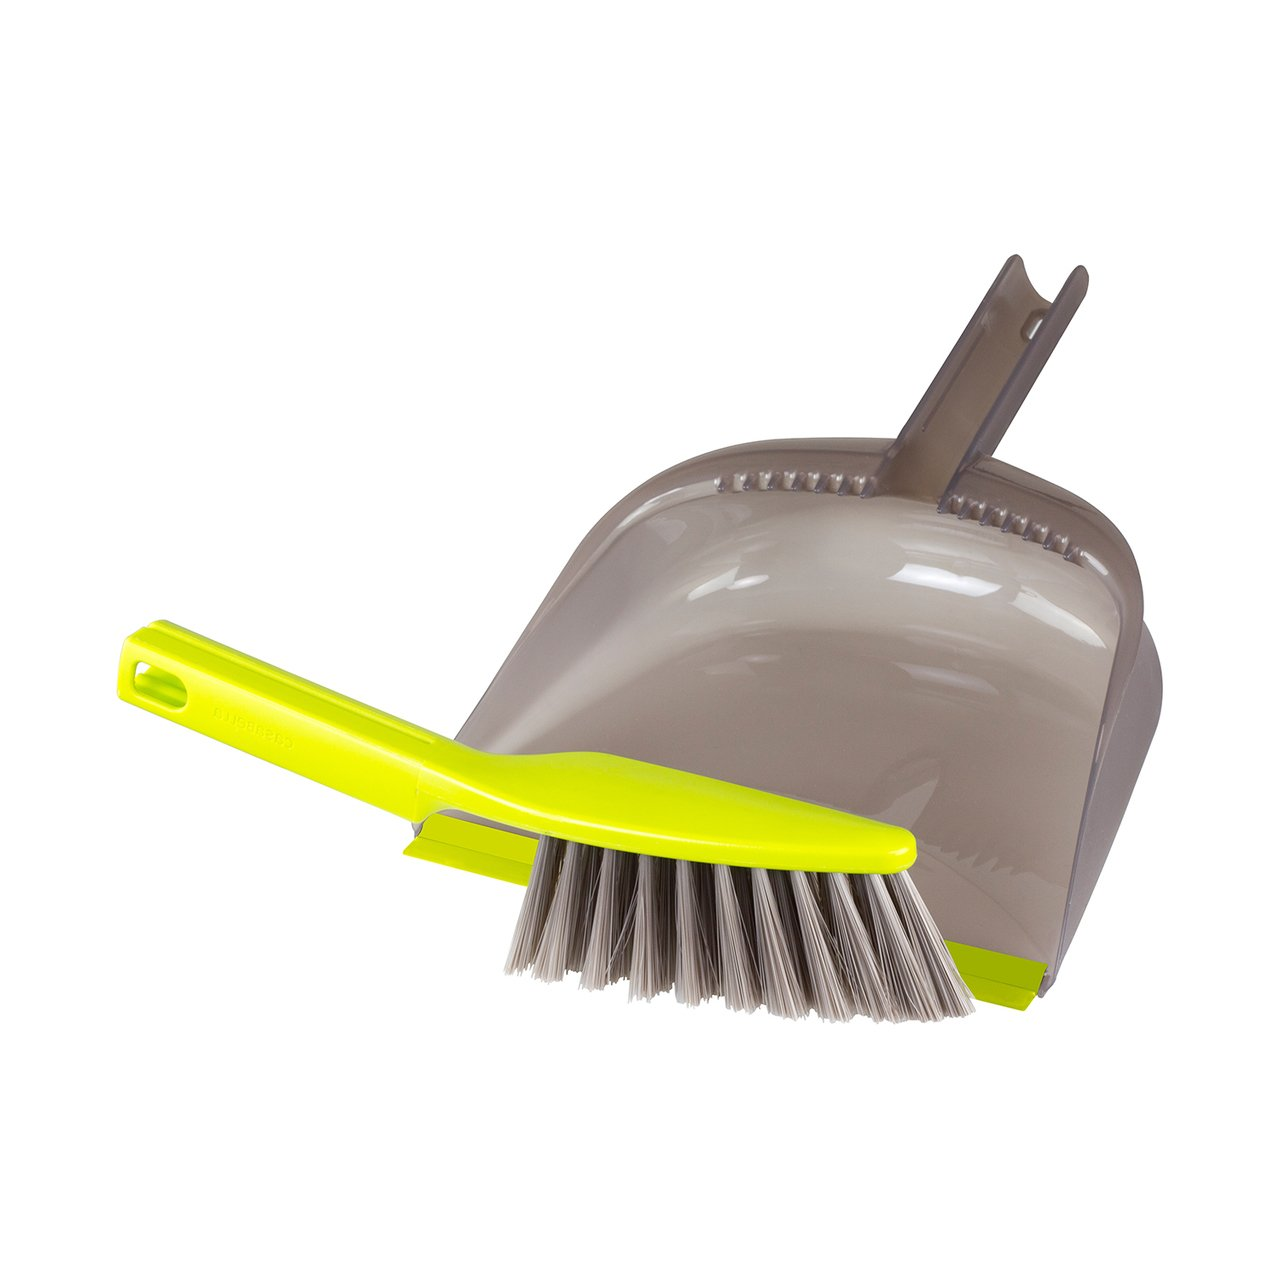 Casabella Wayclean Dustpan & Brush Set 33059